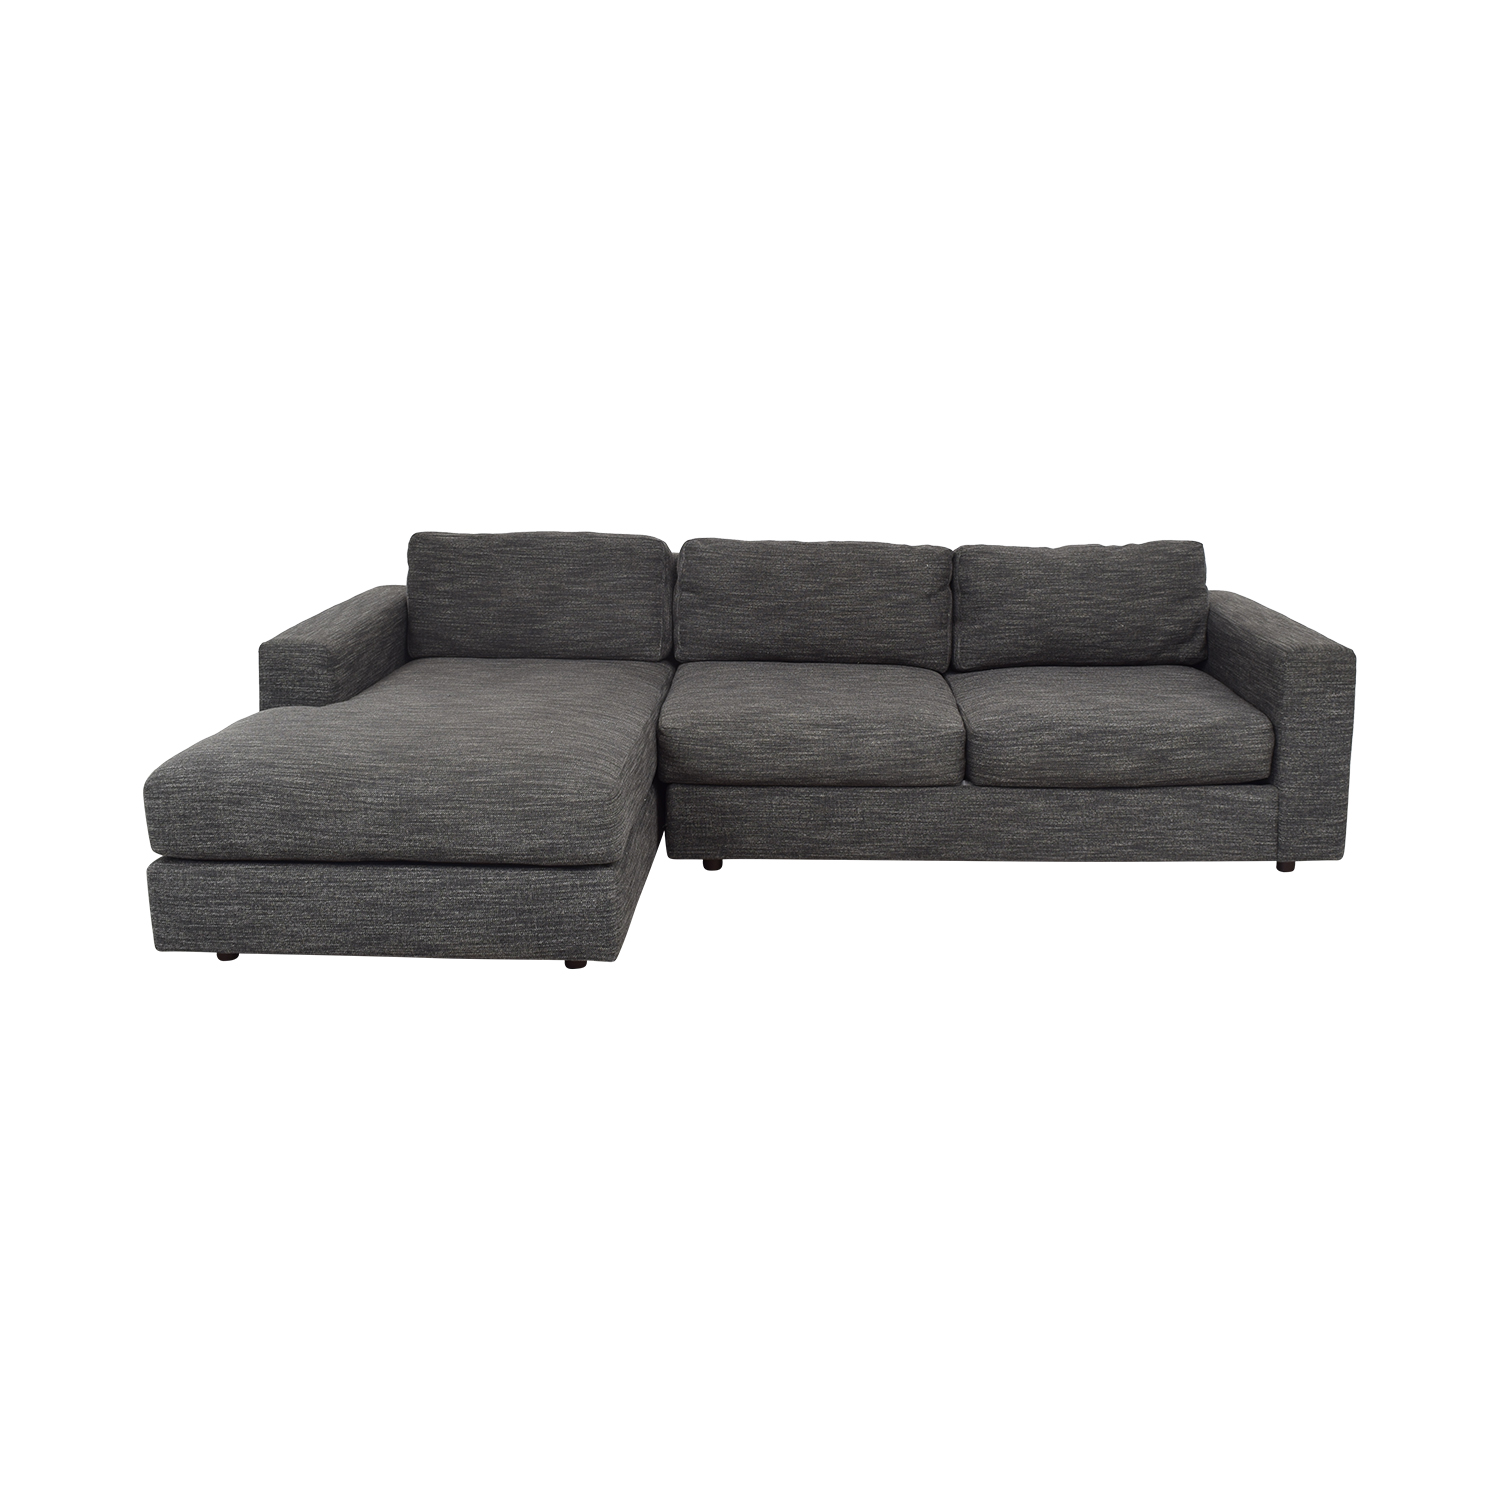 West Elm West Elm Urban Chaise Sectional Sofa coupon